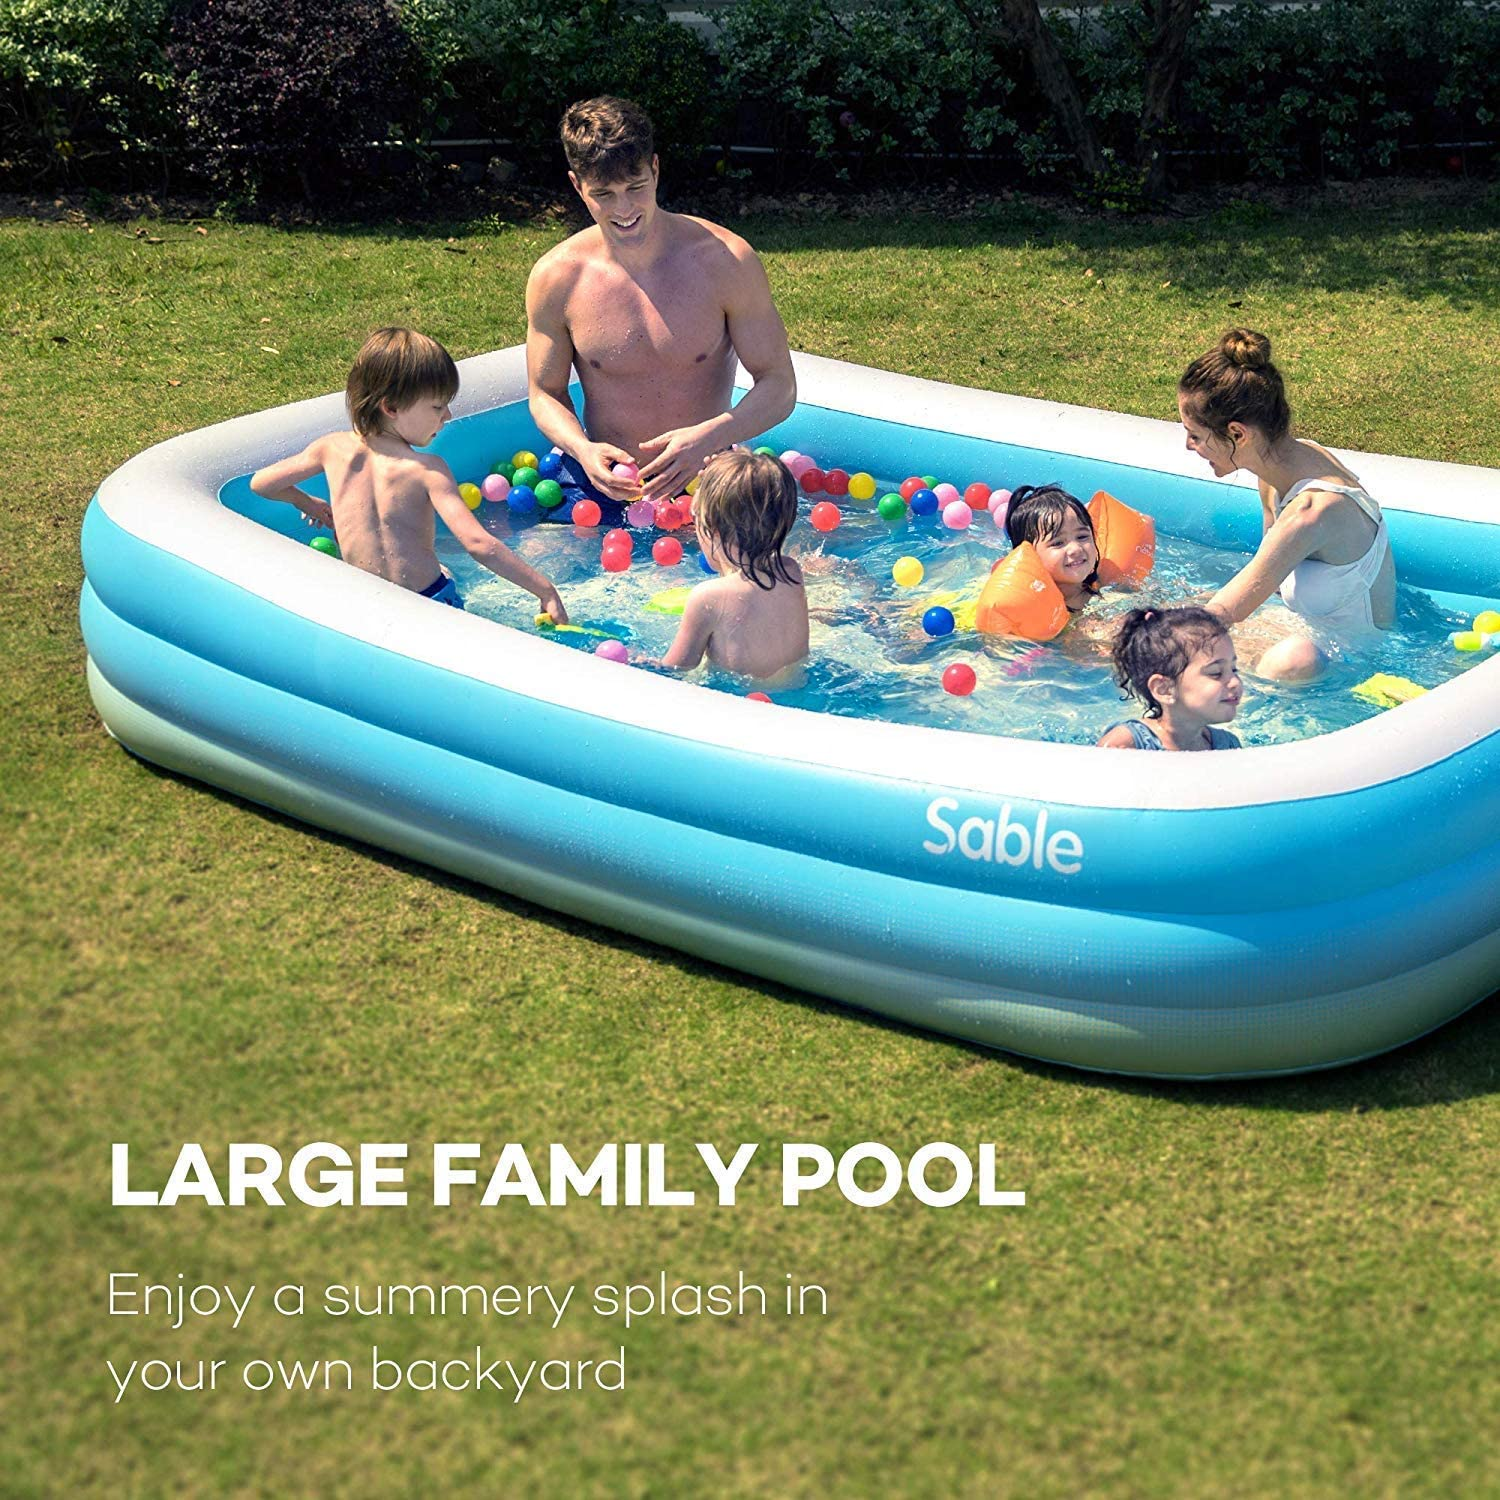 Sable Inflatable Pool, Blow Up Family Full-Sized Pool for Kids